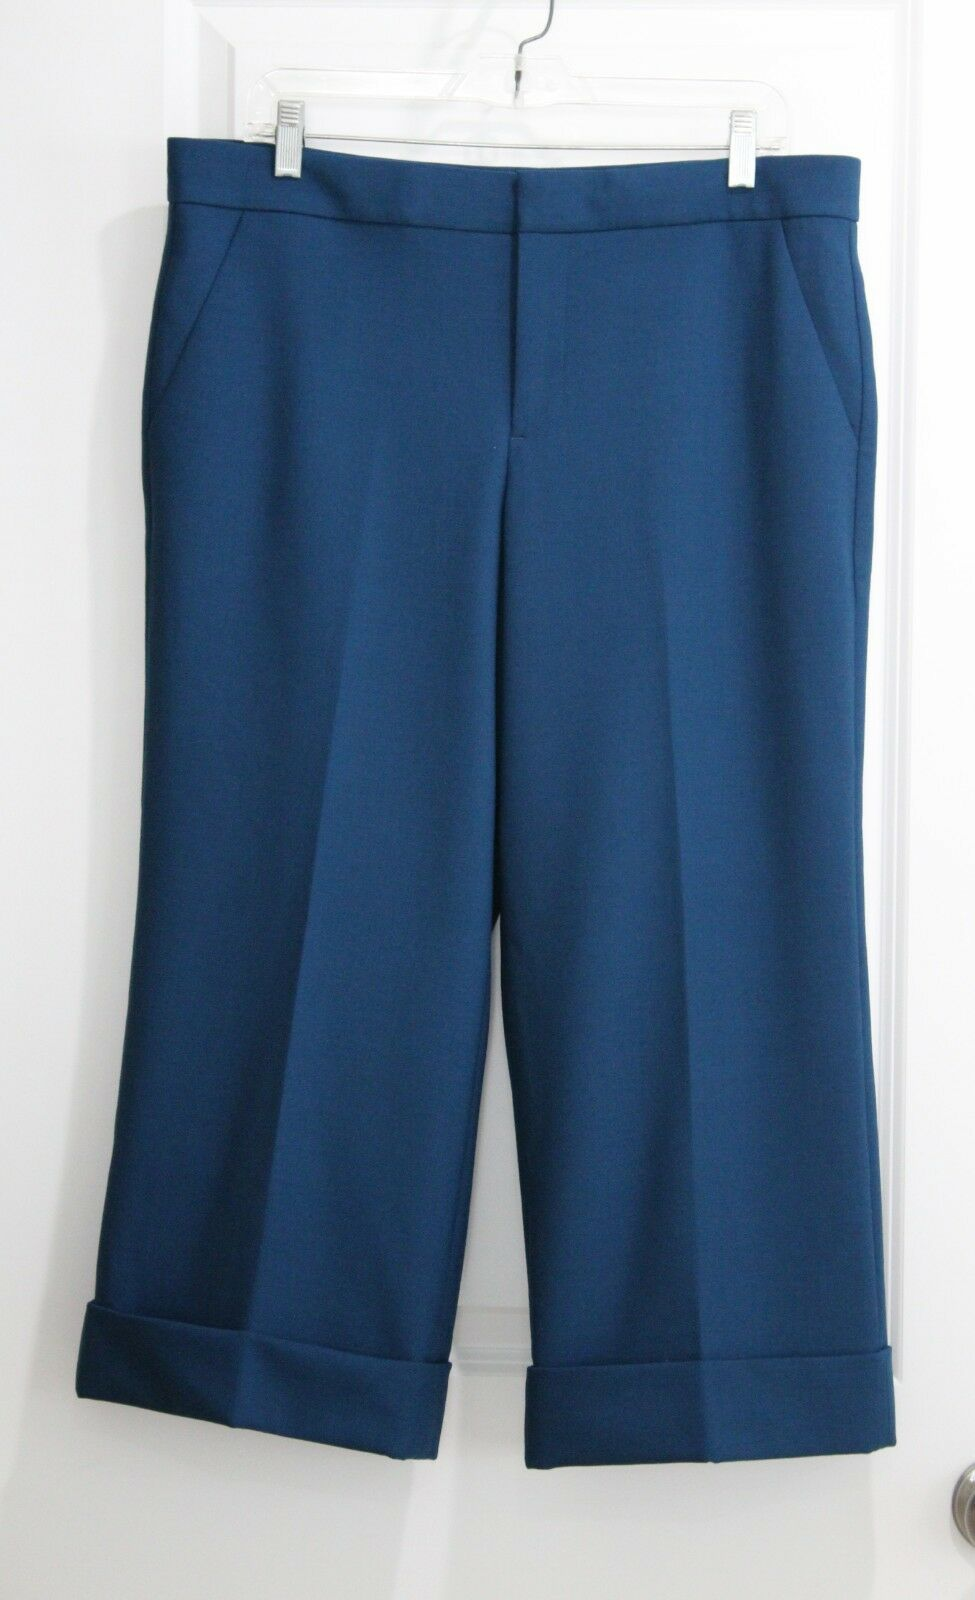 New J Crew COLLECTION CROPPED WIDE LEG TROUSER Sz 12 Stretch Wool bluee Pants